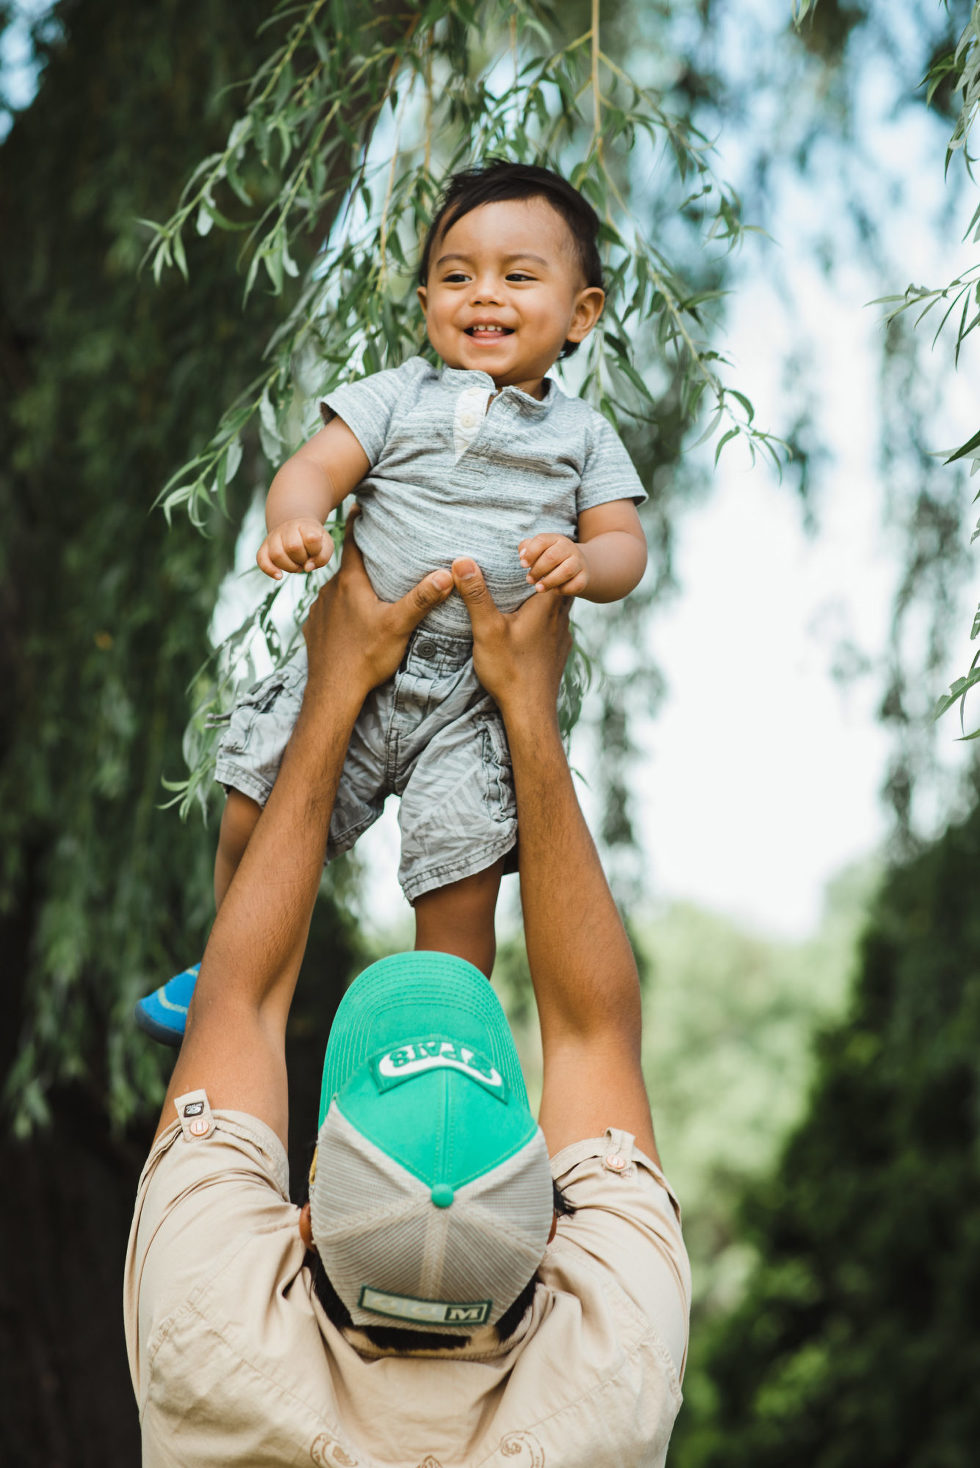 father holding his young smiling toddler in the air family photo session Gillian Foster